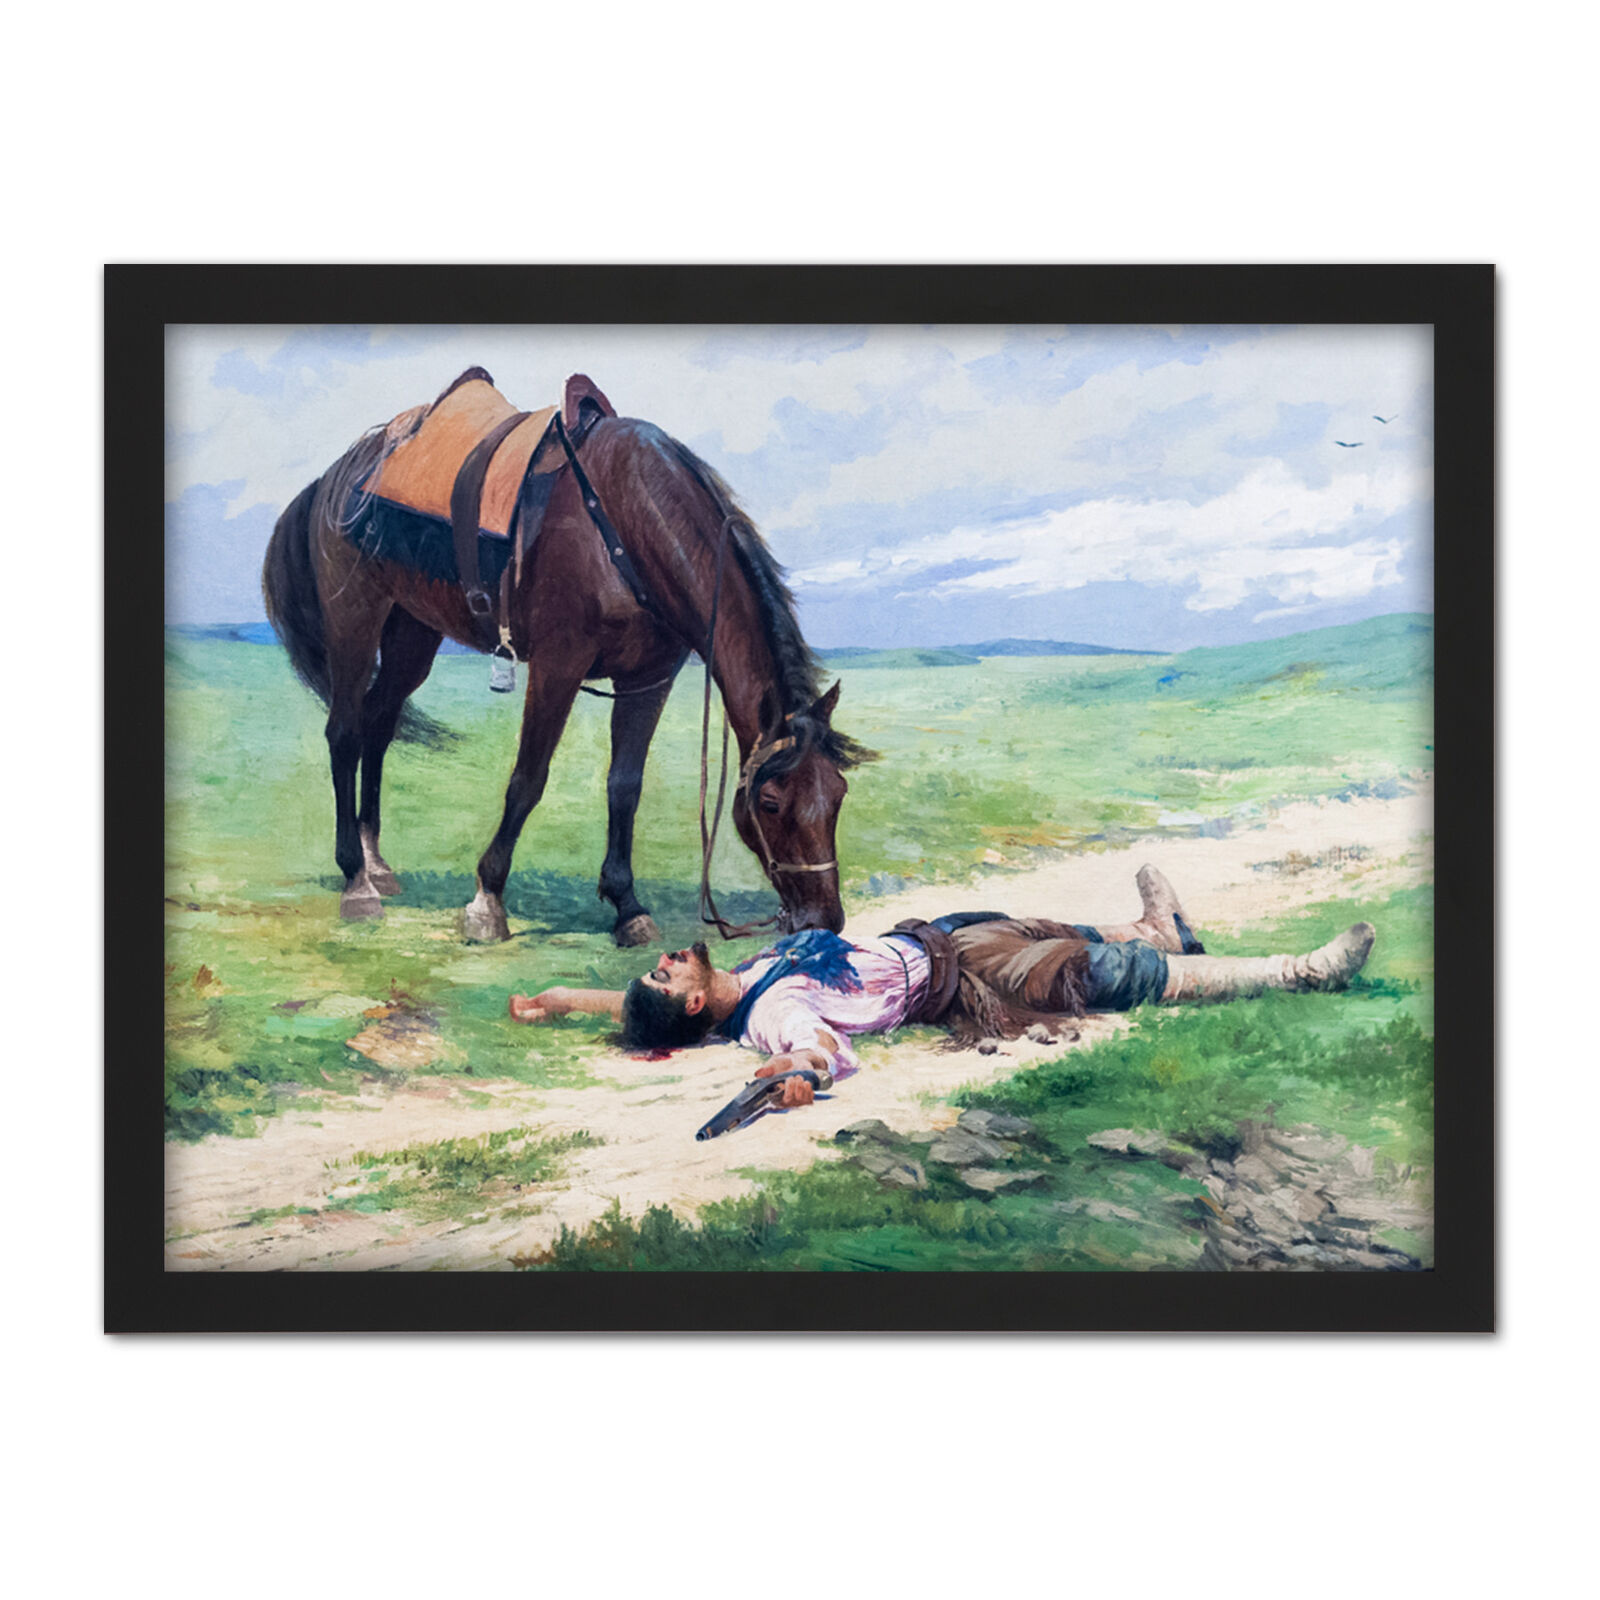 Parreiras The End Of Romance Horse Painting Framed Wall Art Print 18X24 In